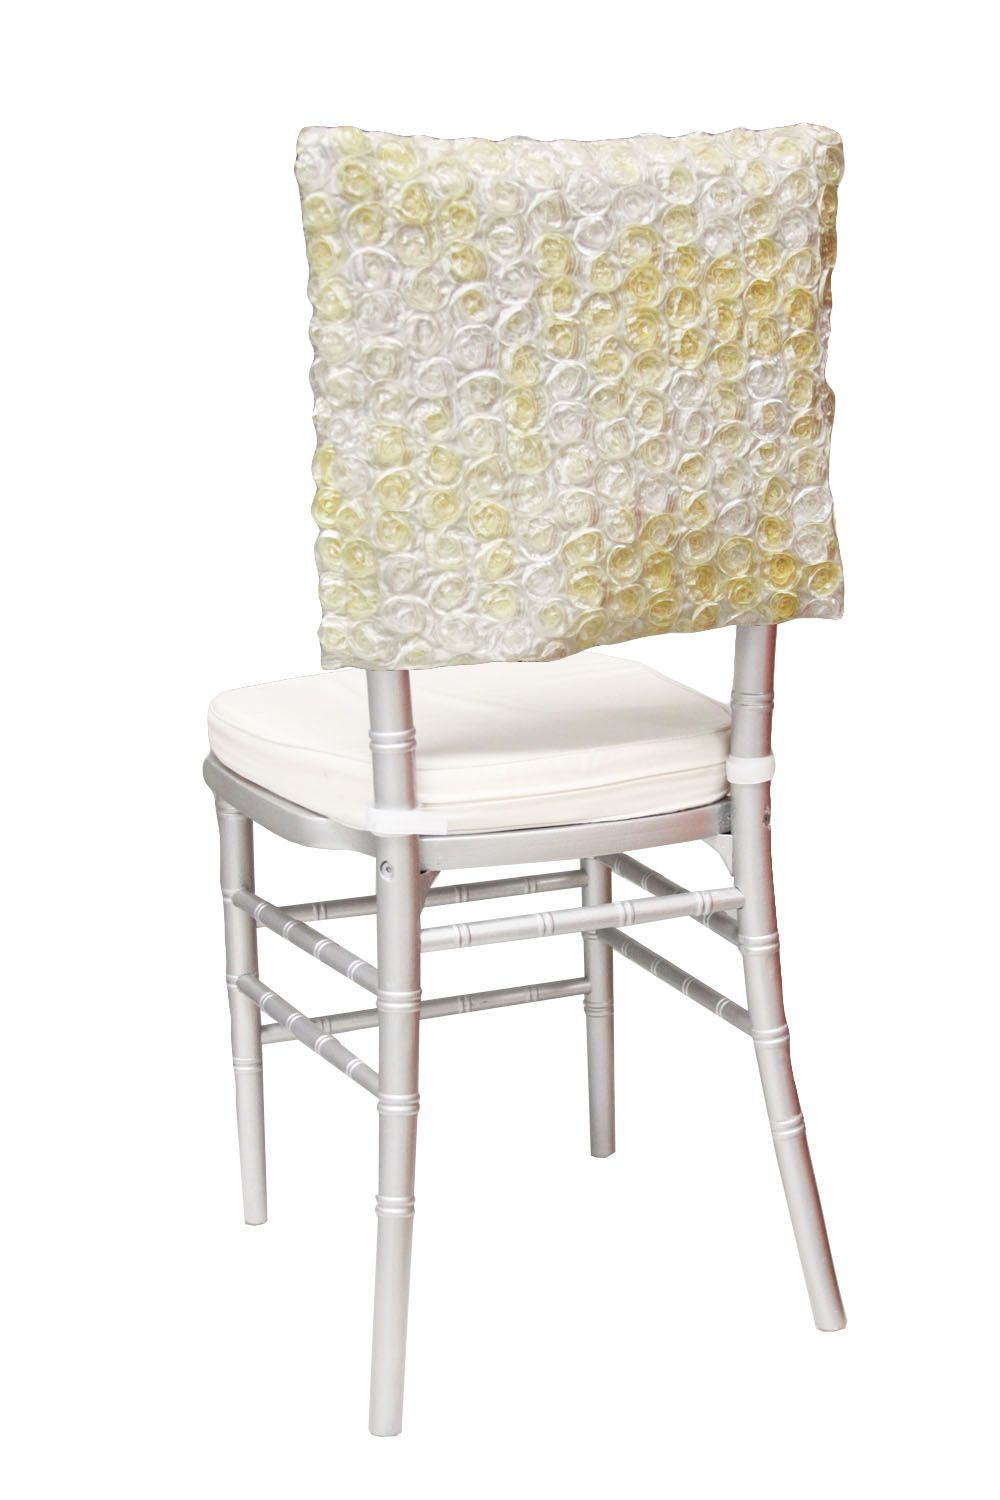 Erikadarden Rent Wedding And Event Chair Covers